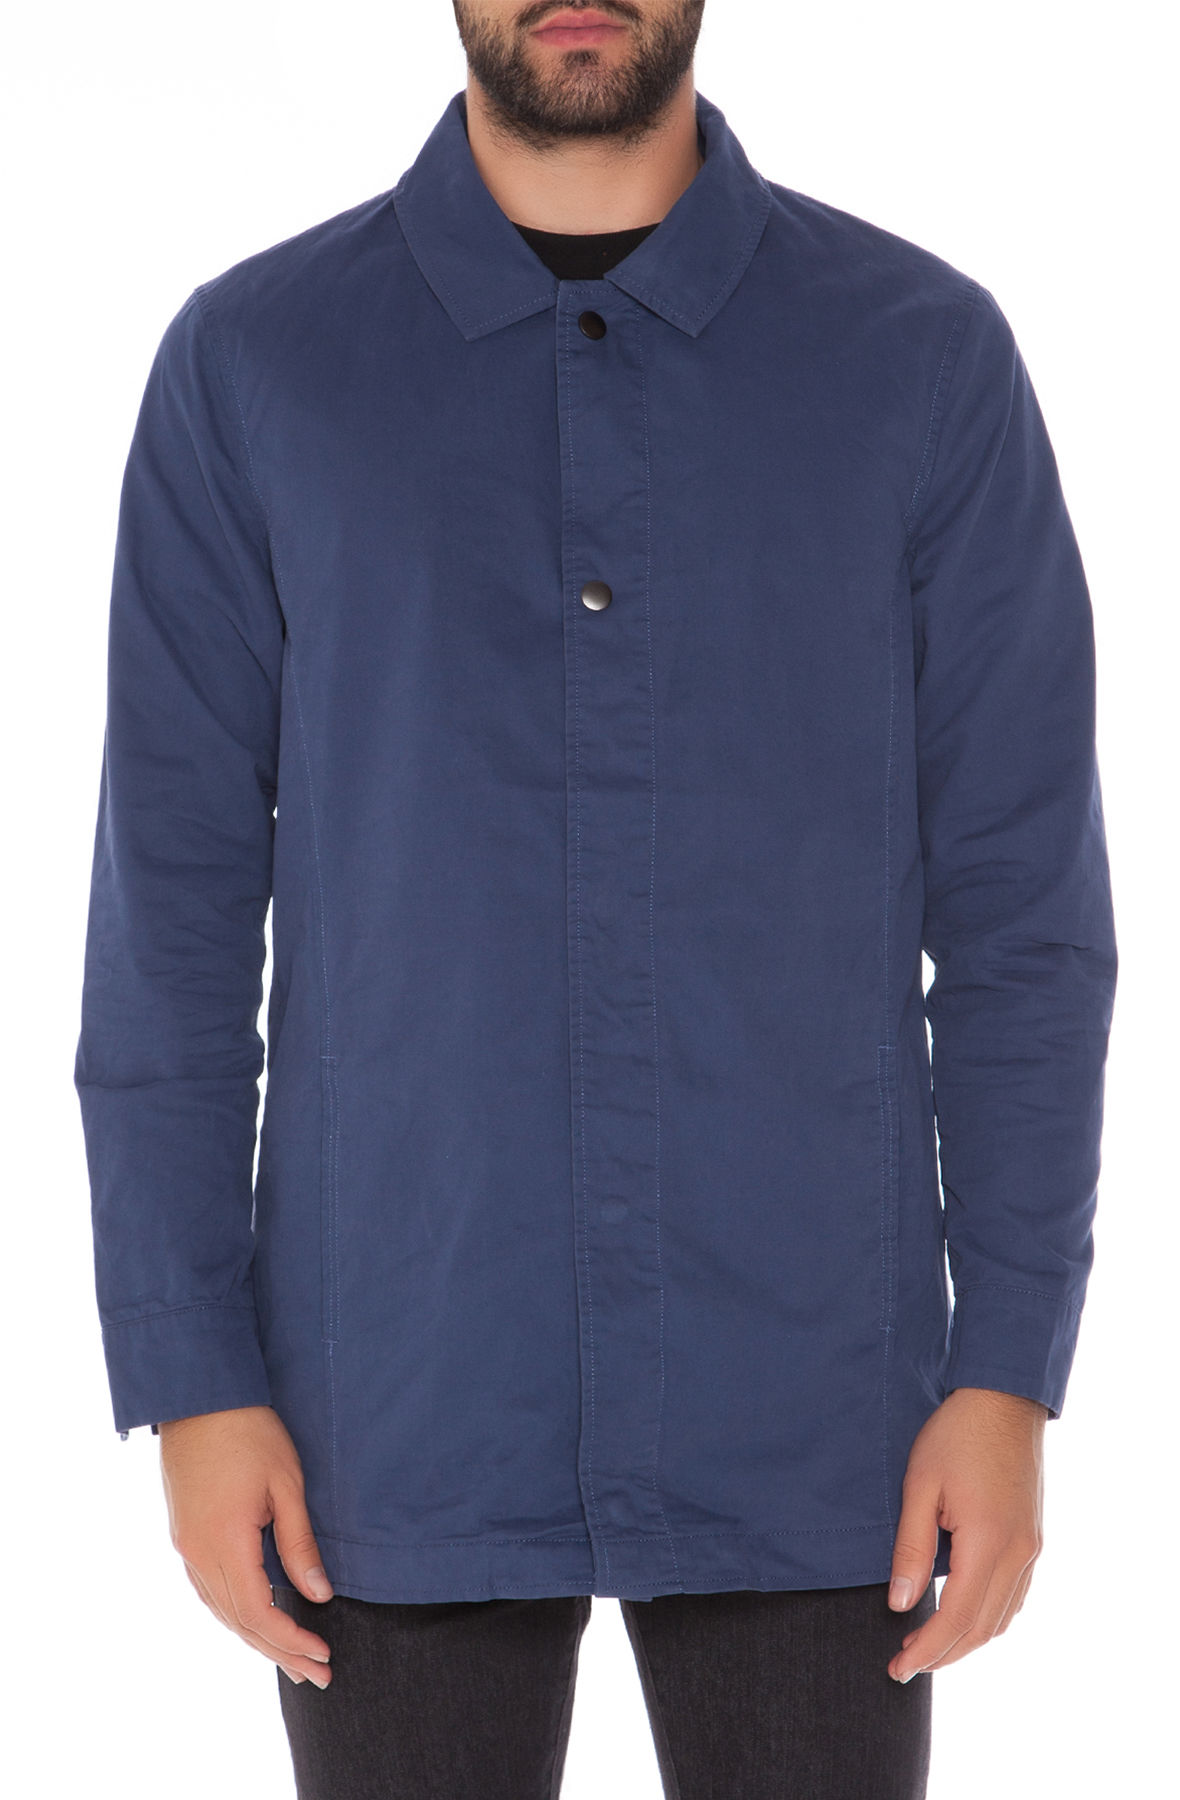 Image of The Canvas Snapdown Jacket in Blue